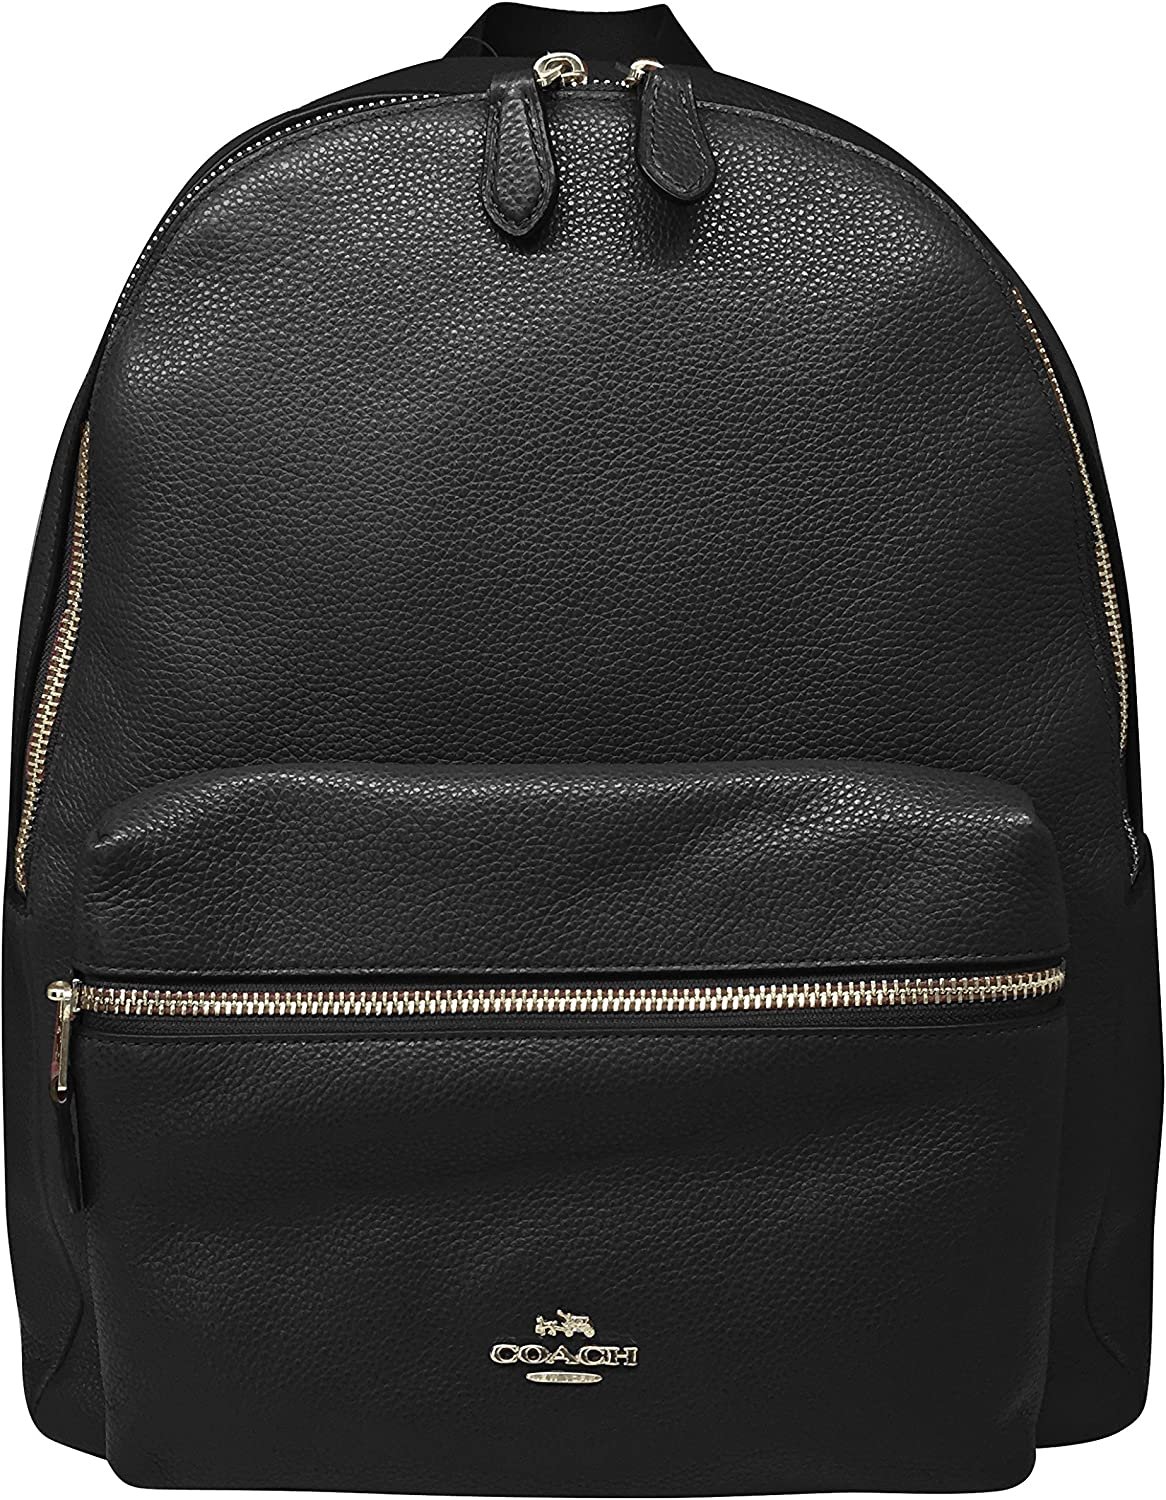 Coach Charlie Pebble Leather Backpack 17091